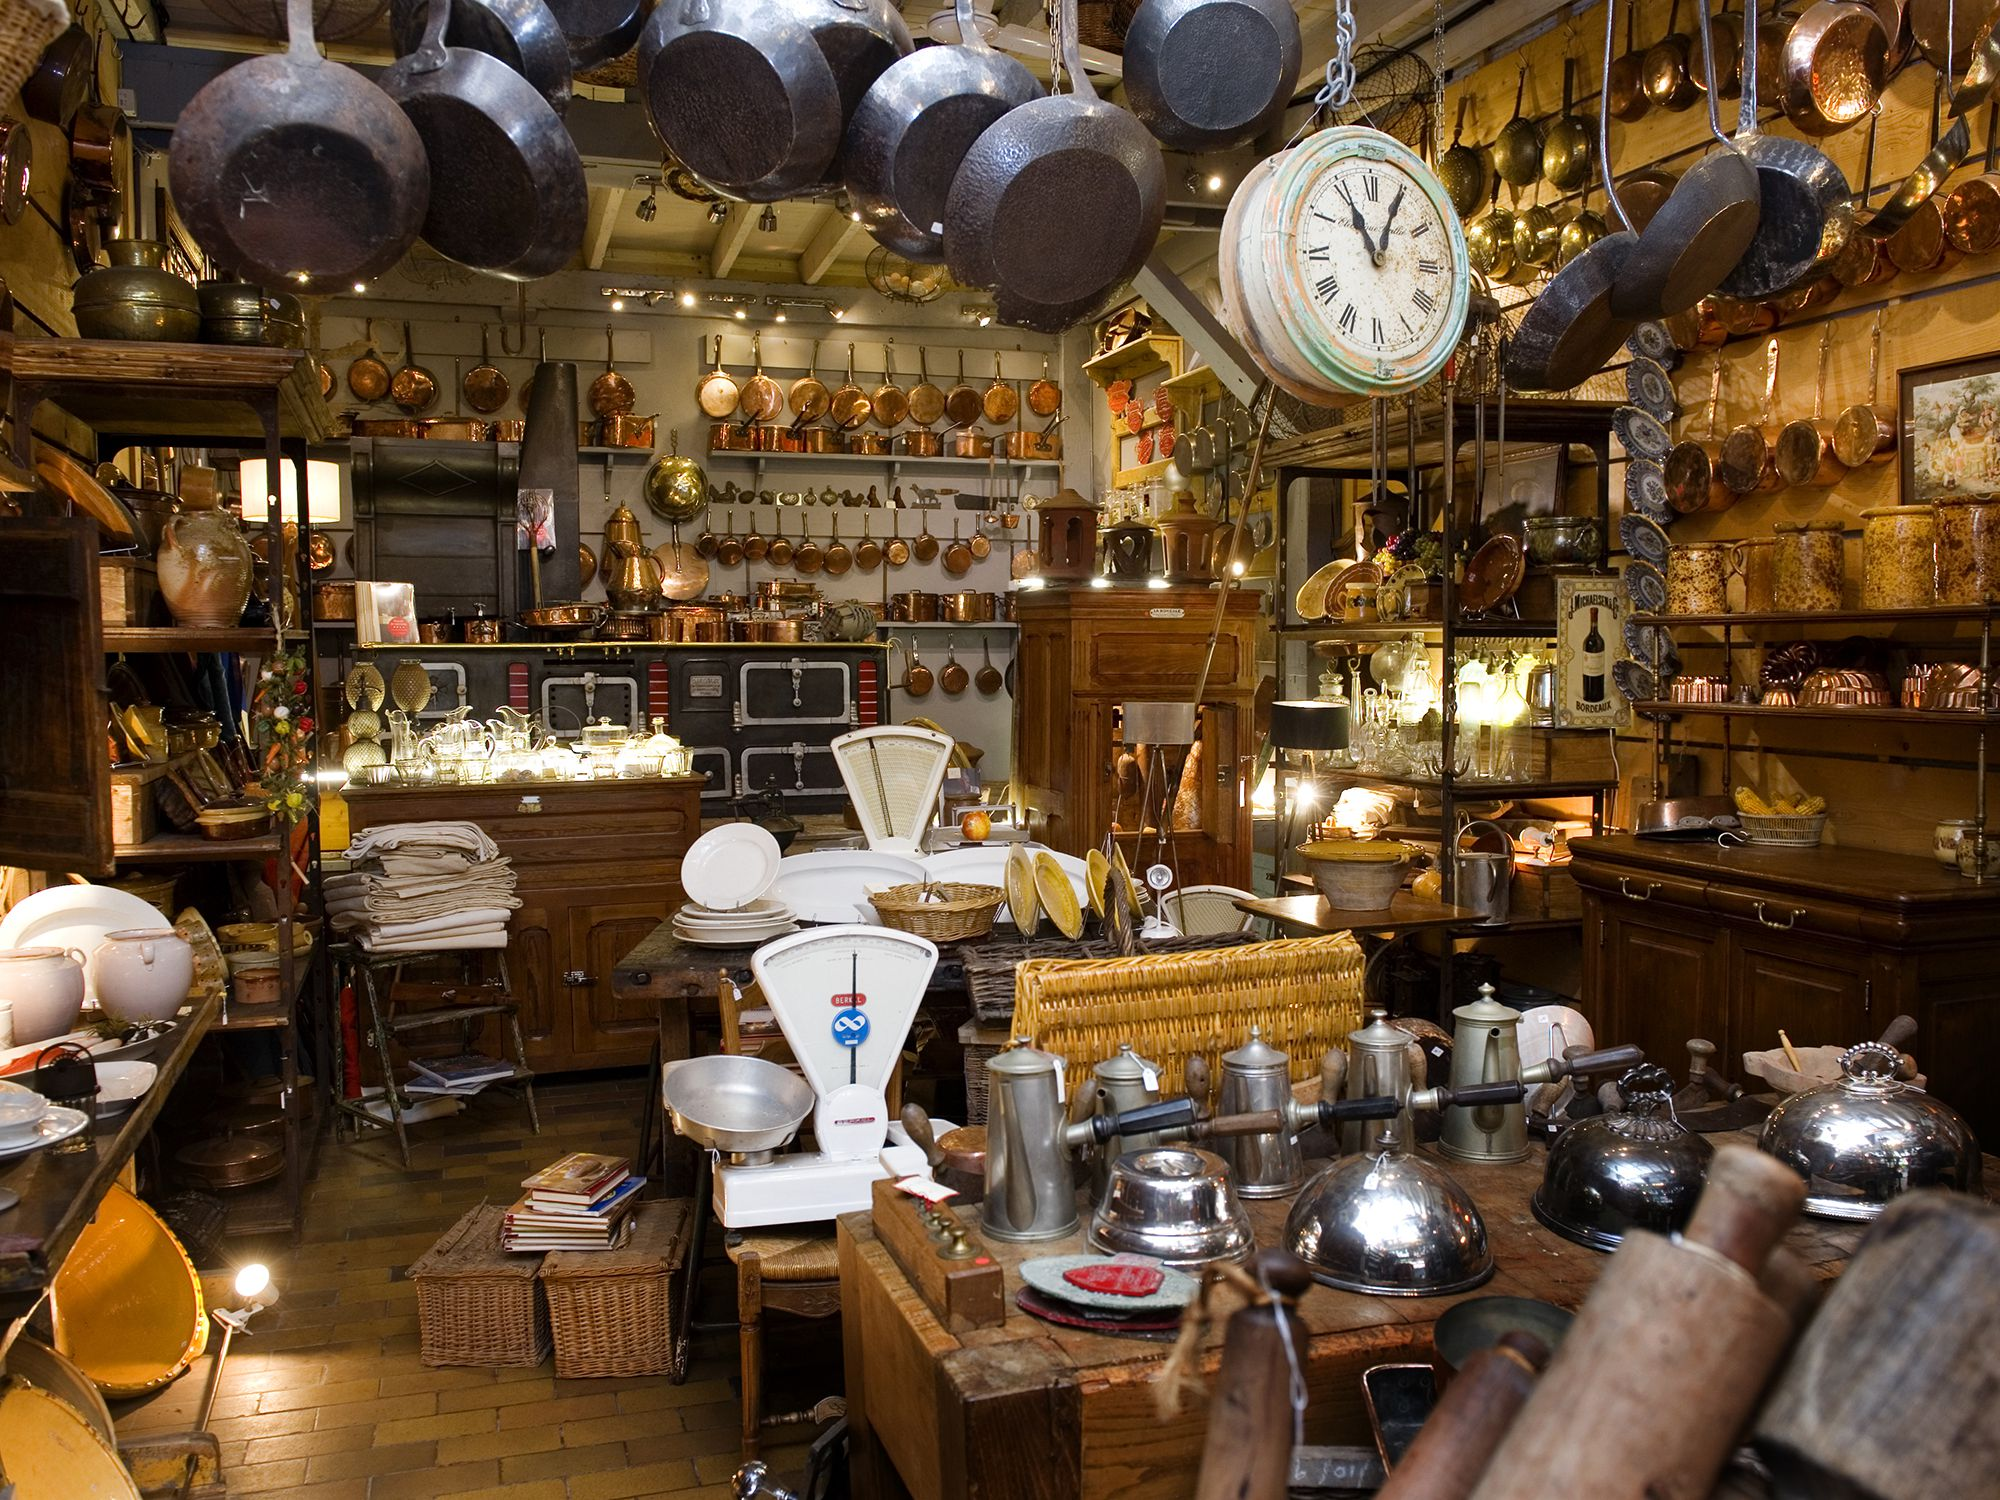 Why Antique Items Are a Great Investment